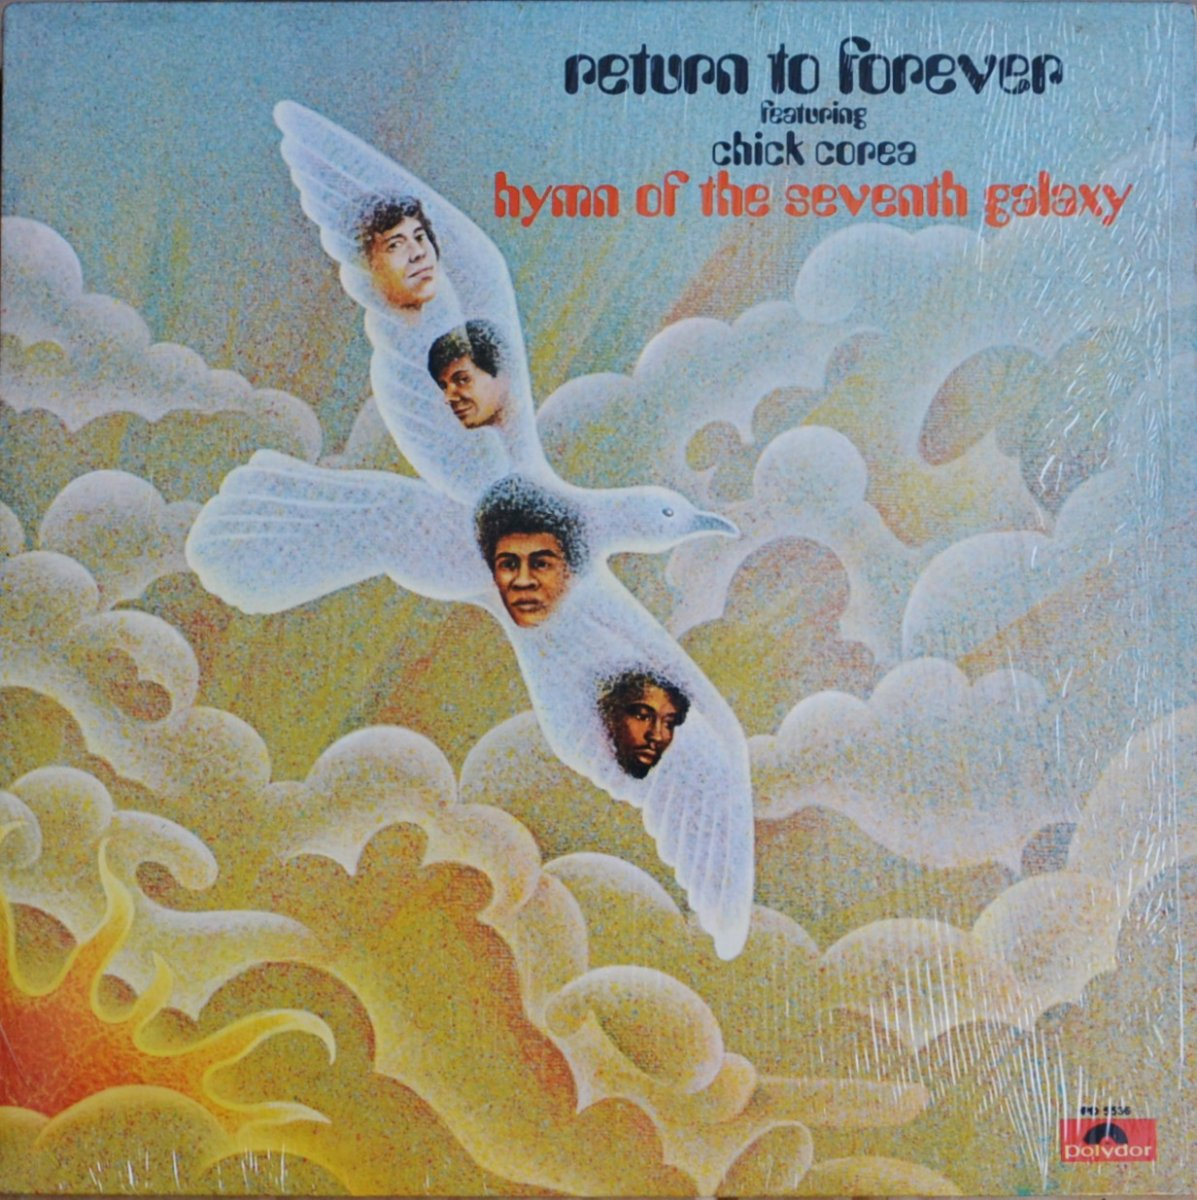 RETURN TO FOREVER FEATURING CHICK COREA ‎/ HYMN OF THE SEVENTH GALAXY (LP)